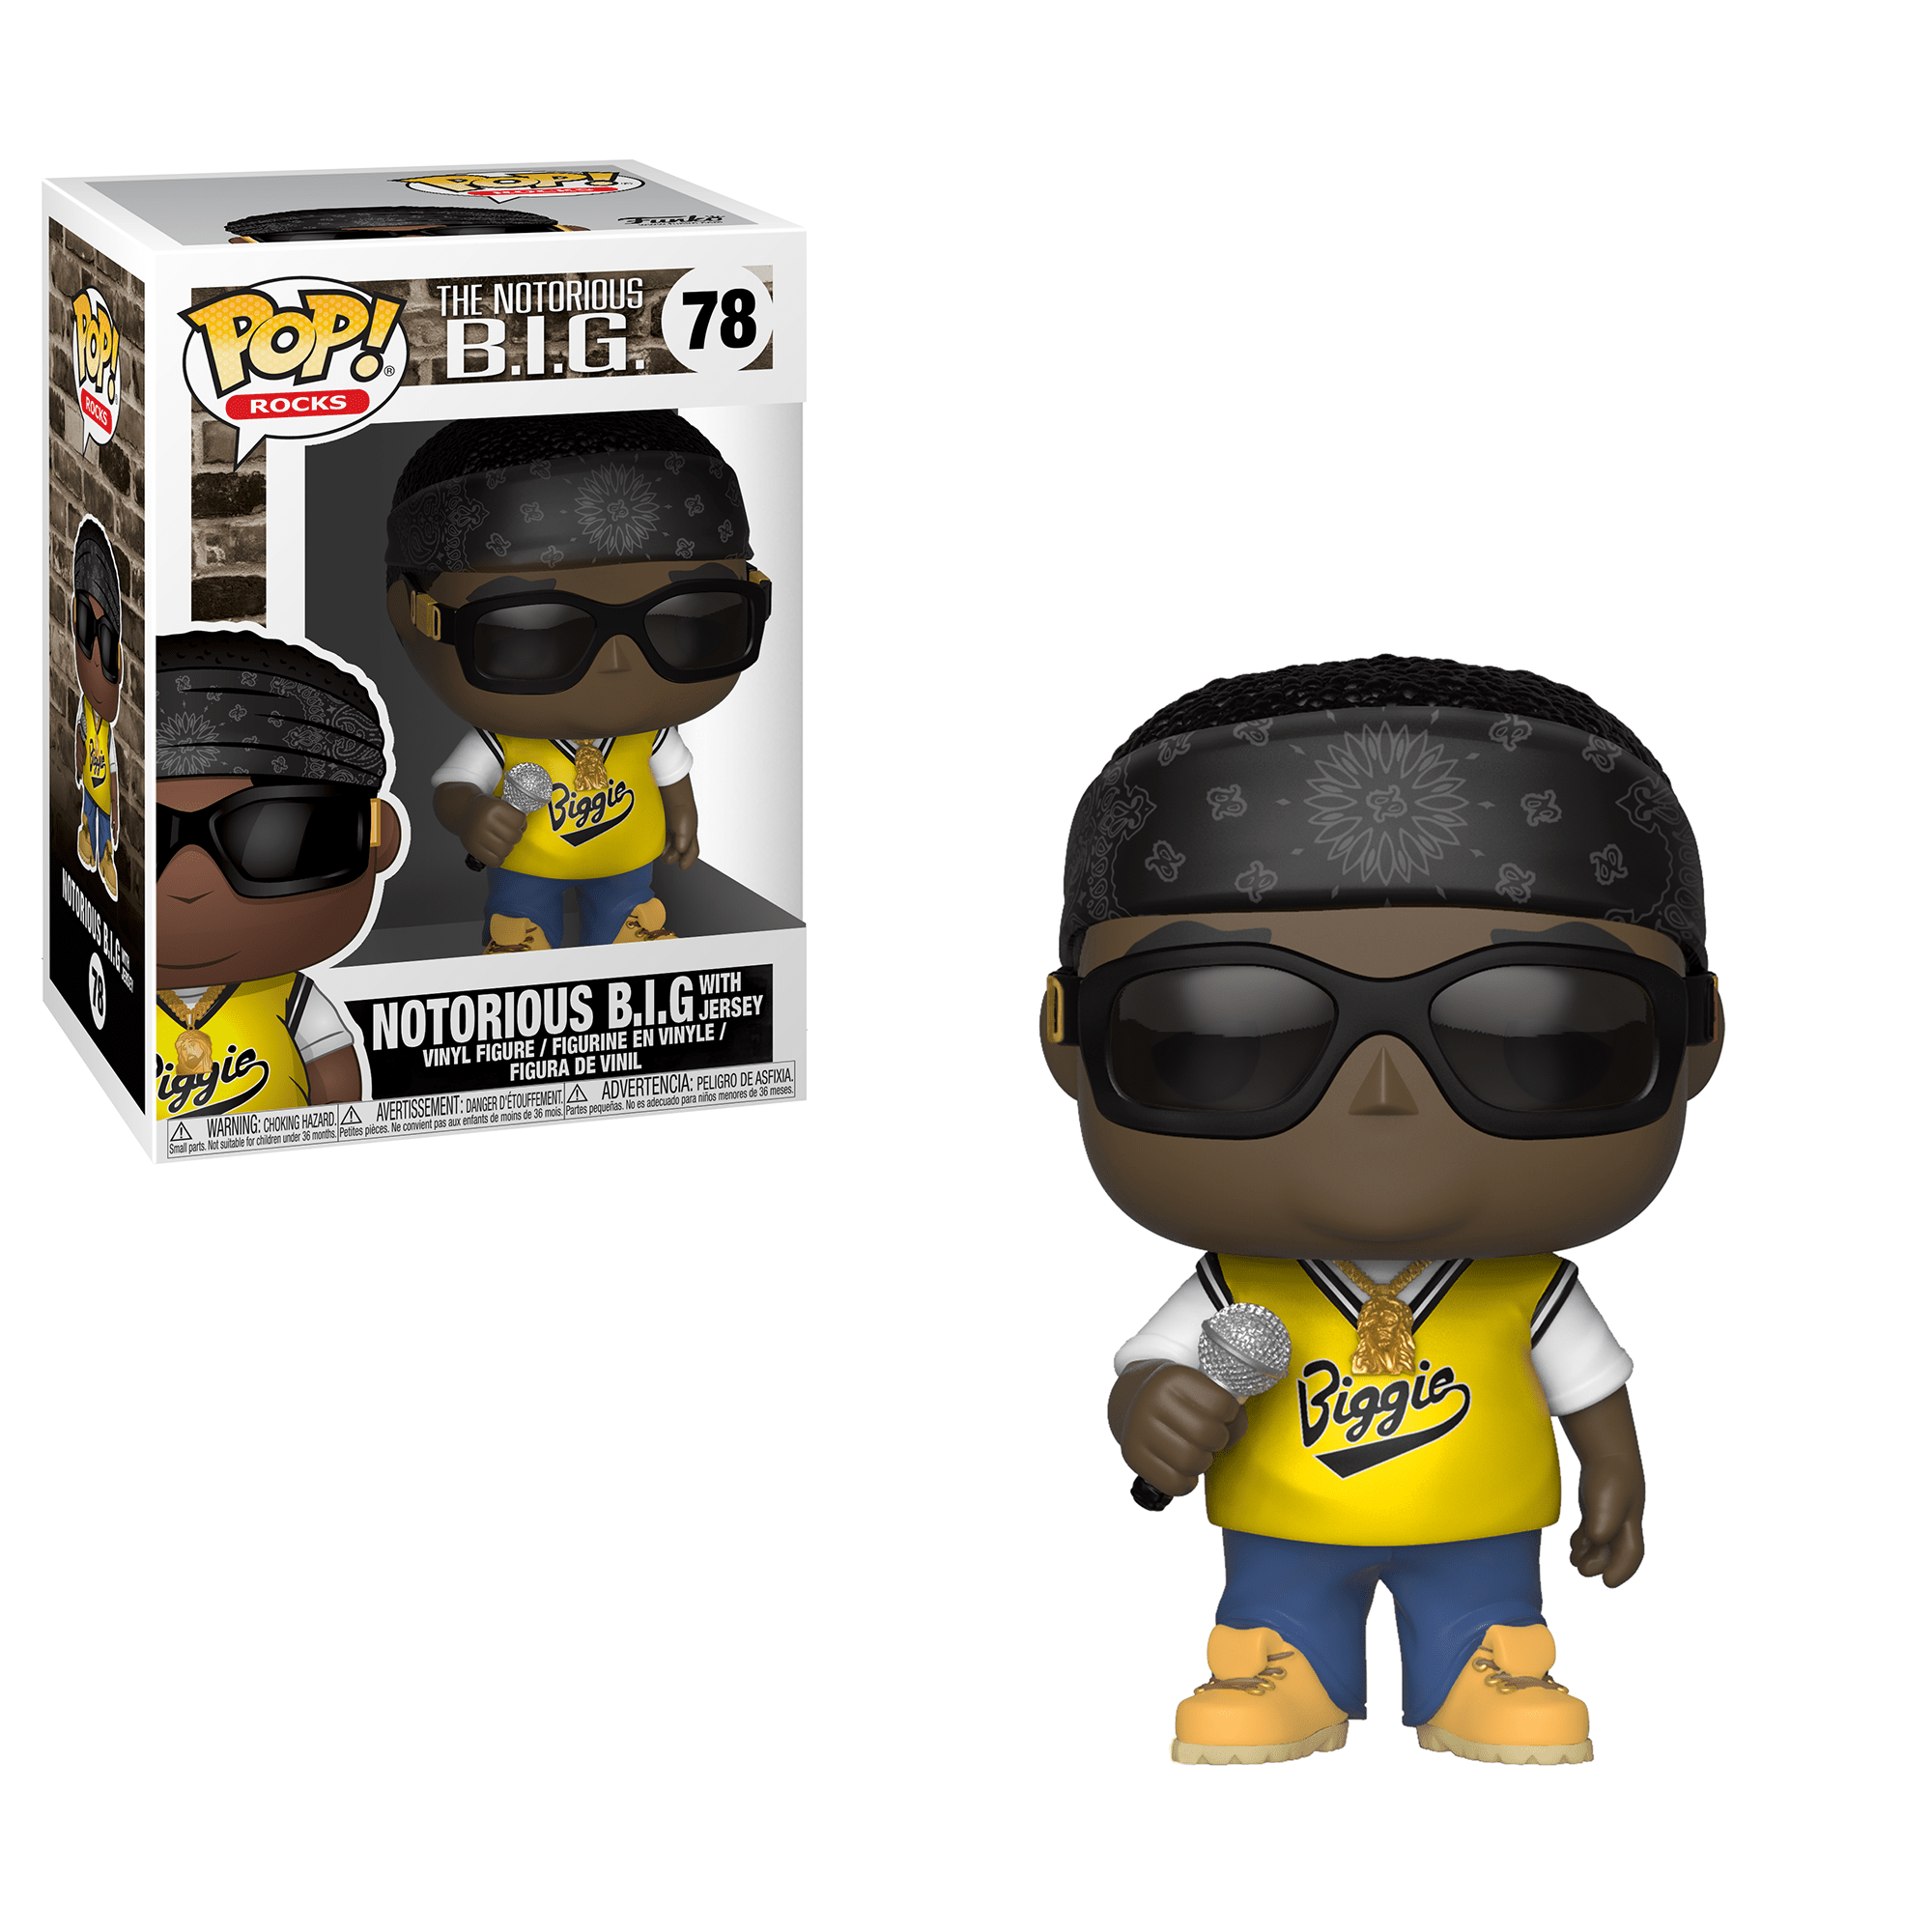 Funko Pop! Rocks - The Notorious B.I.G. #78 - Notorious B.I.G. (with Jersey) - Simply Toys